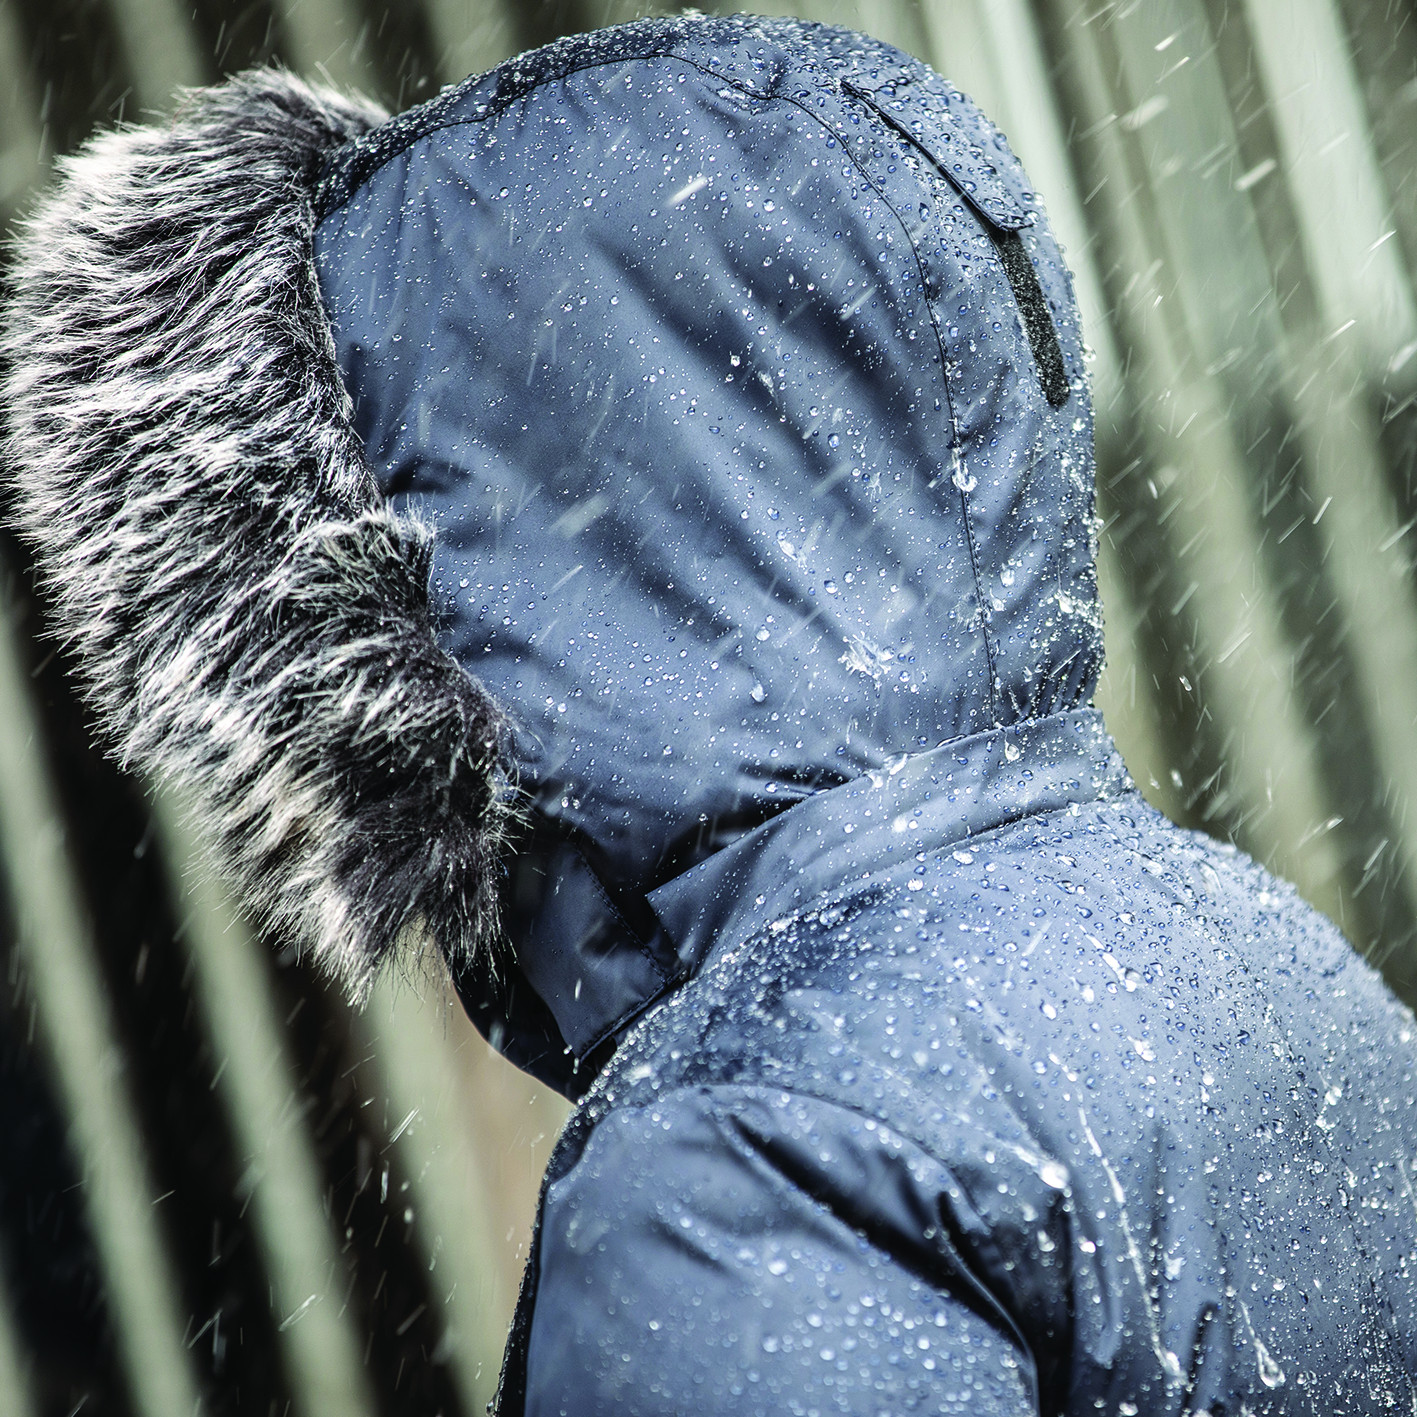 WHAT ARE WATERPROOF RIDING CLOTHES?